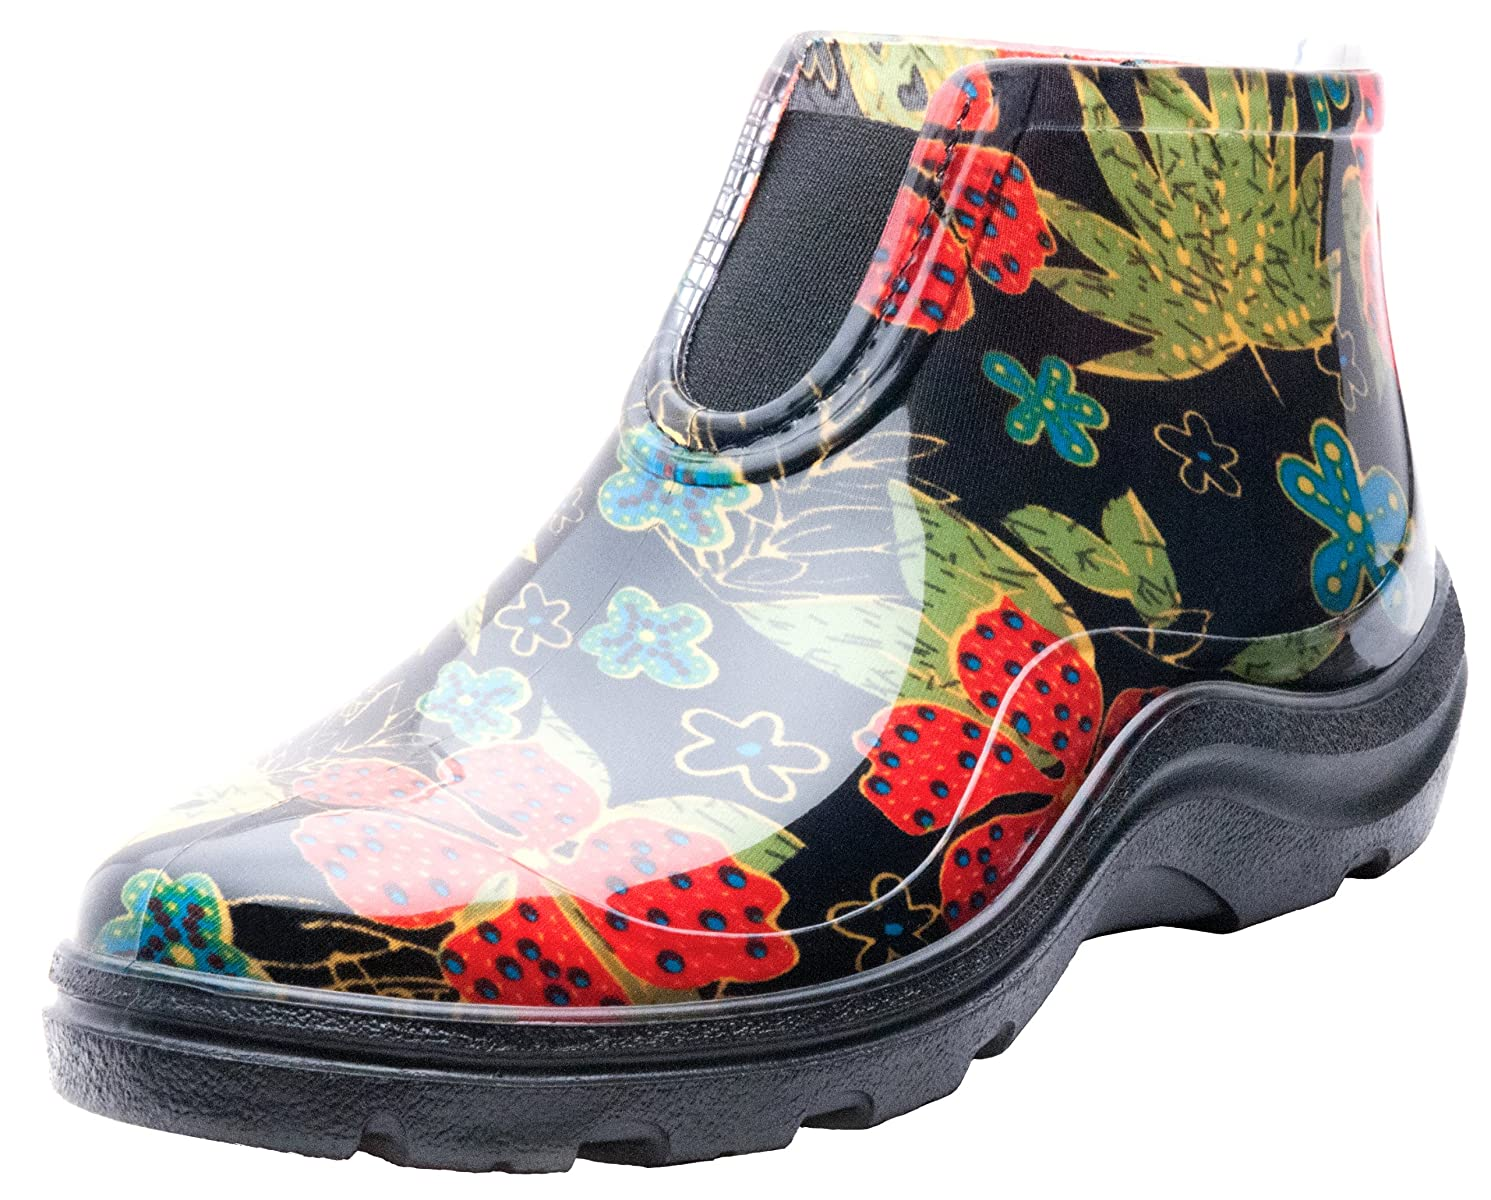 Sloggers Women's Waterproof Rain and Garden Ankle Boots with Comfort Insole, Midsummer Black,Size 7, Style 2841BK07